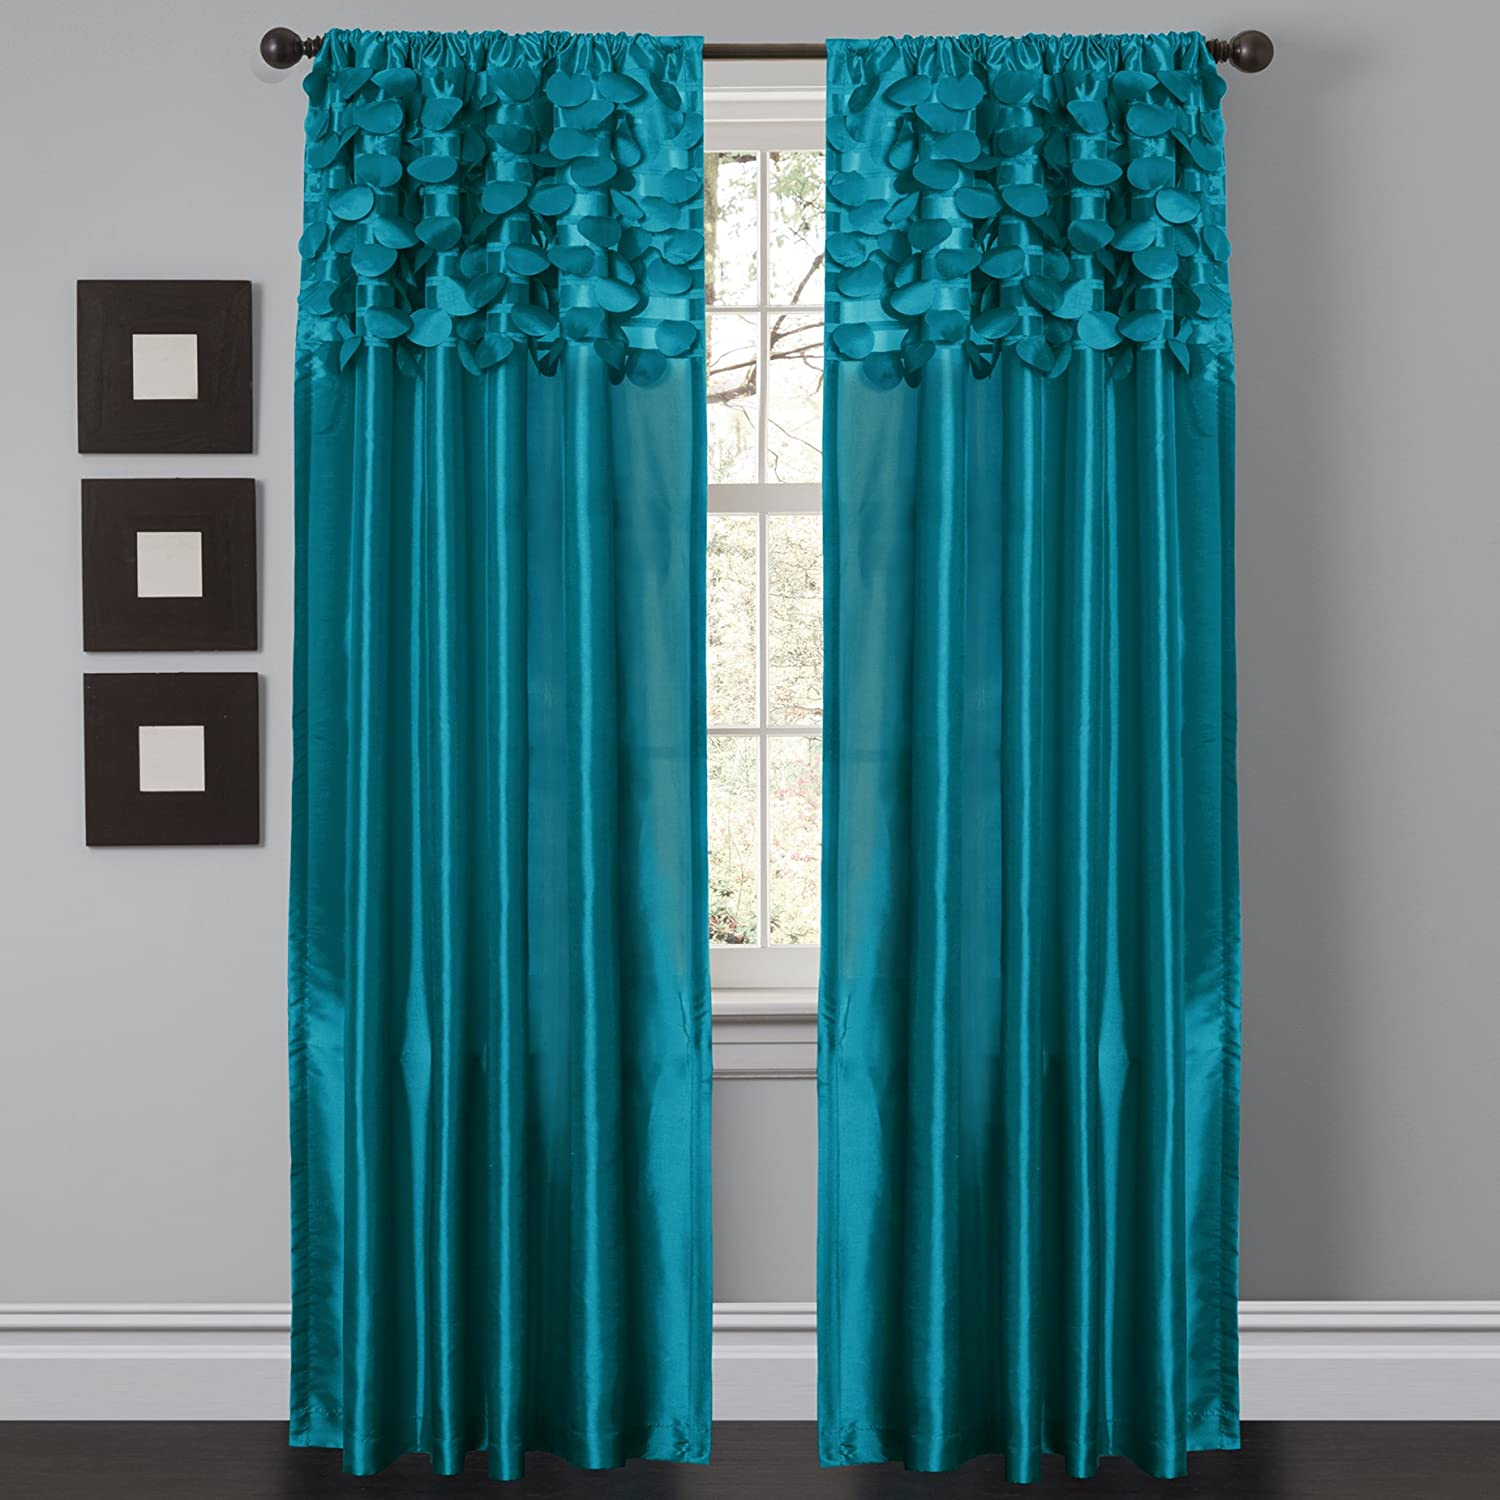 "Lush Decor Circle Dream Window Curtains Panel Set for Living, Dining Room, Bedroom (Pair), 84"" x 54"", Turquoise"